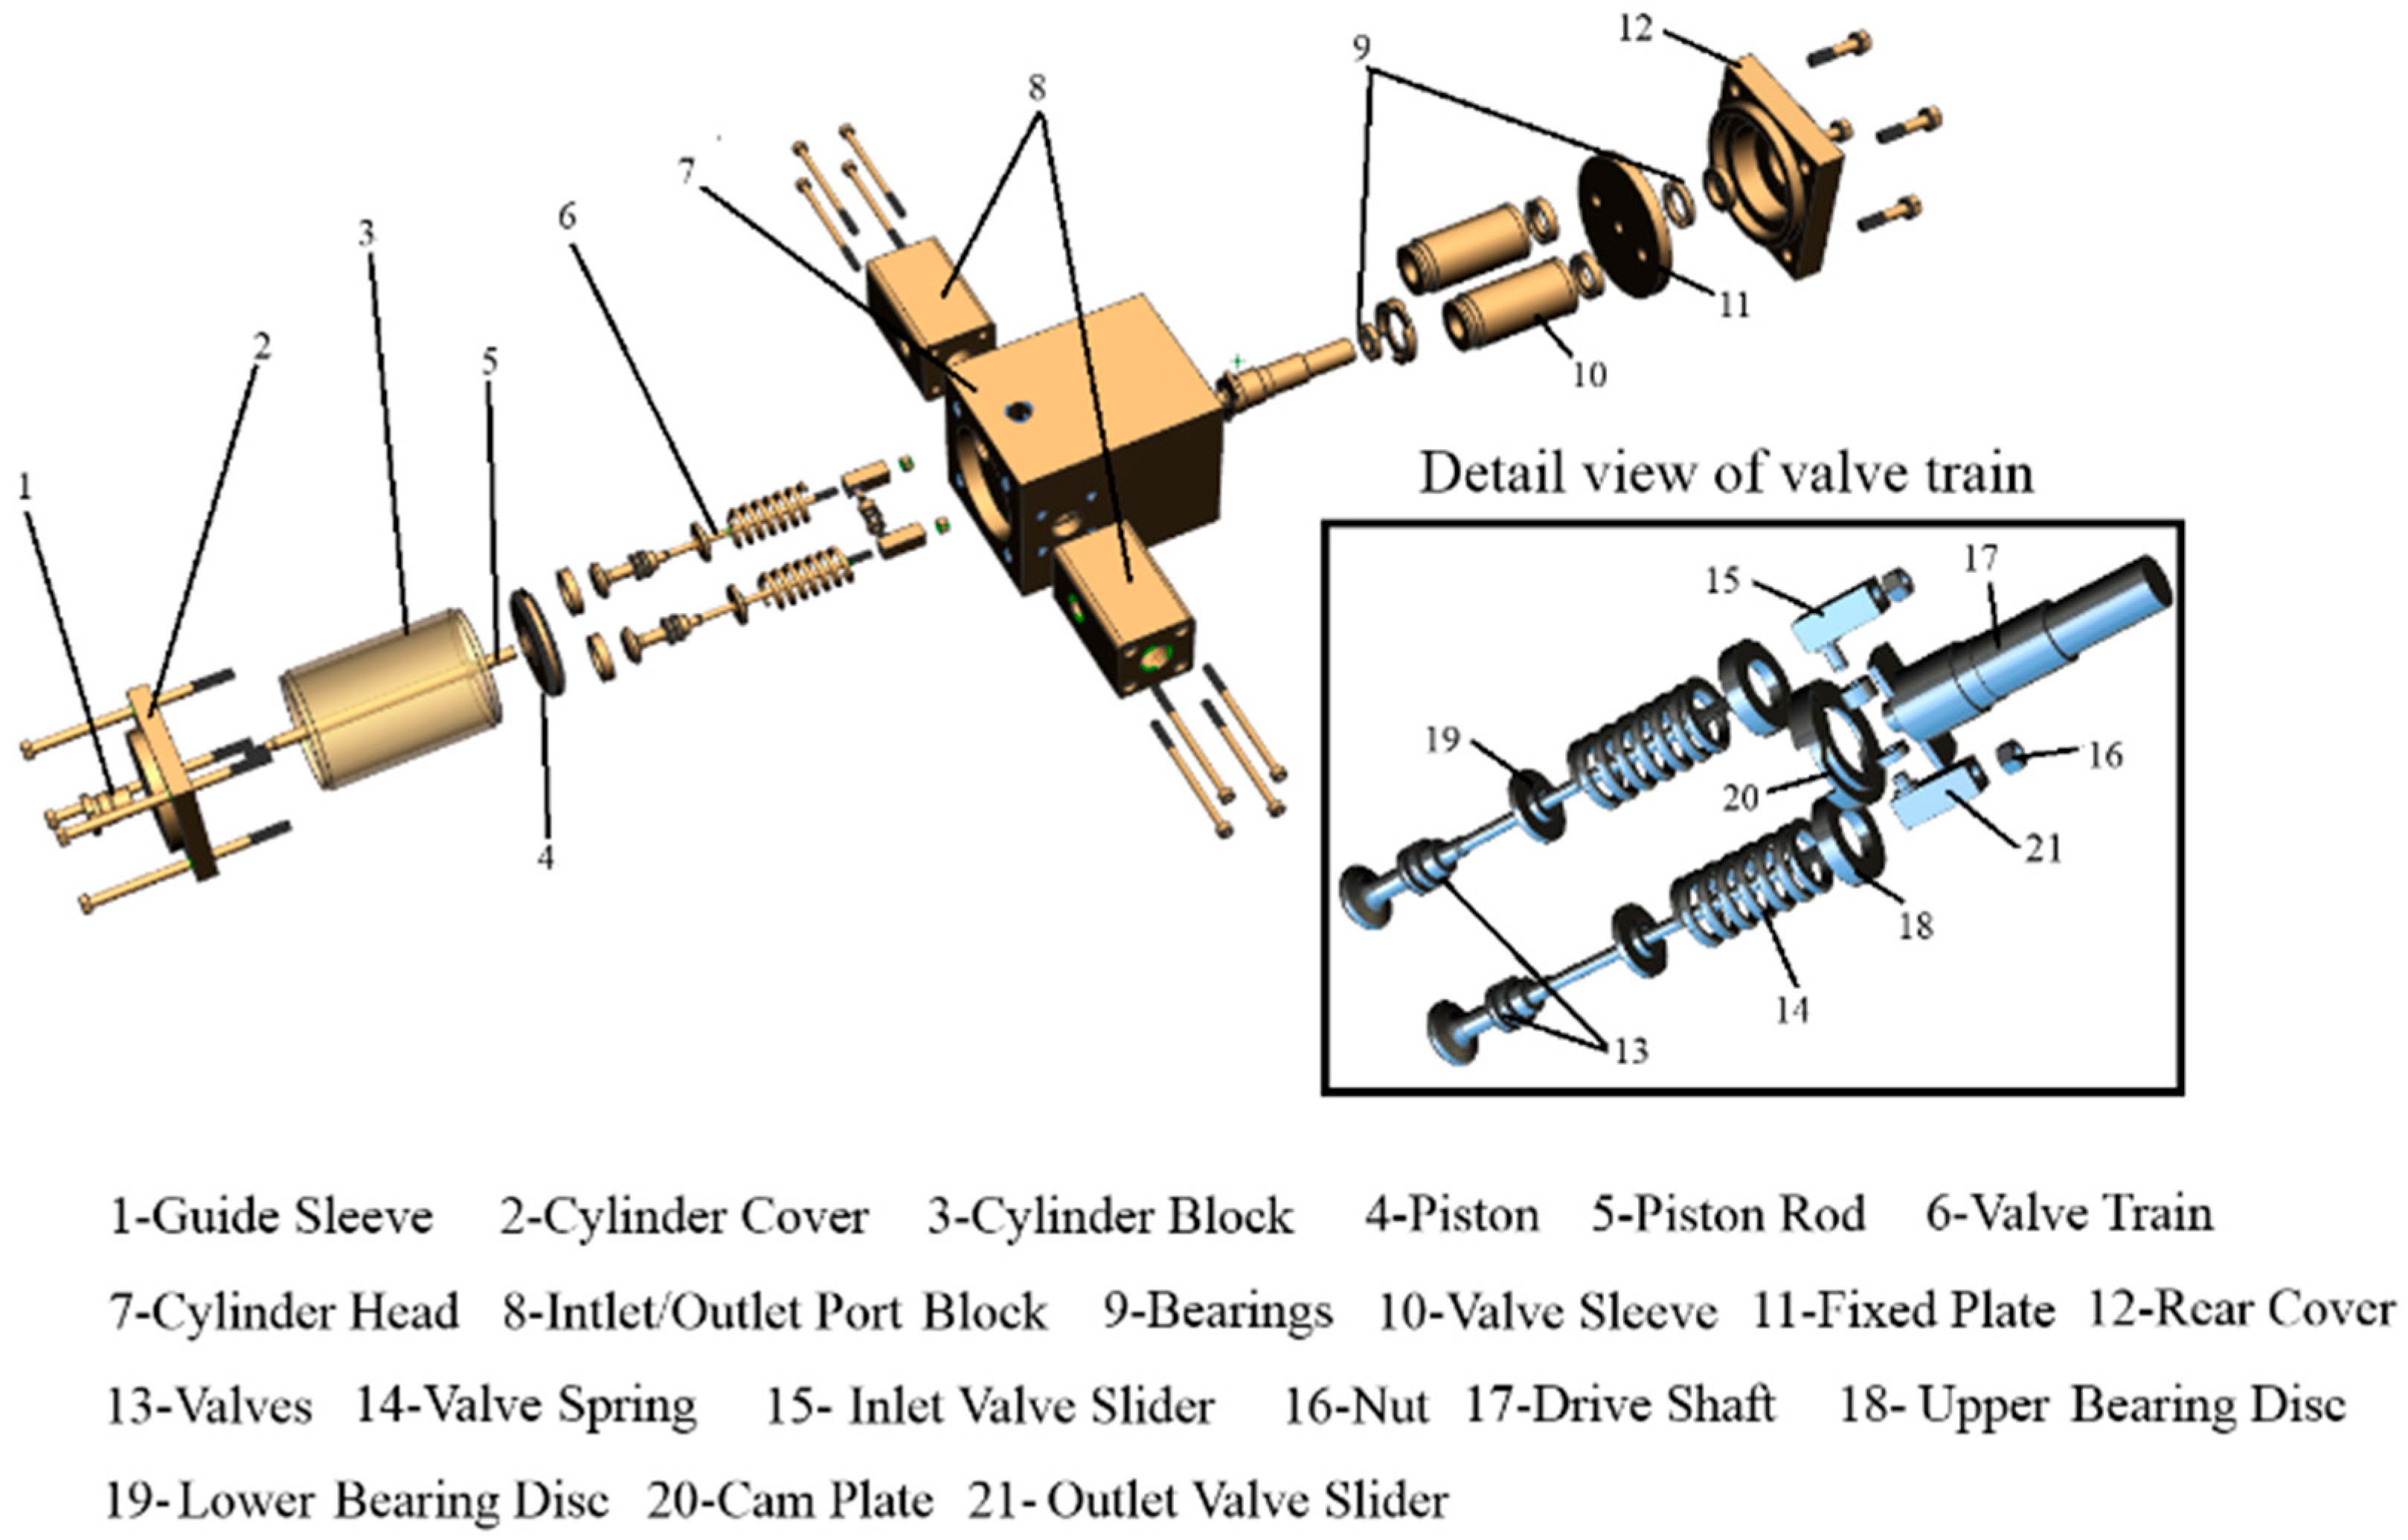 Valve Train Diagram Energies Free Full Text Of Valve Train Diagram